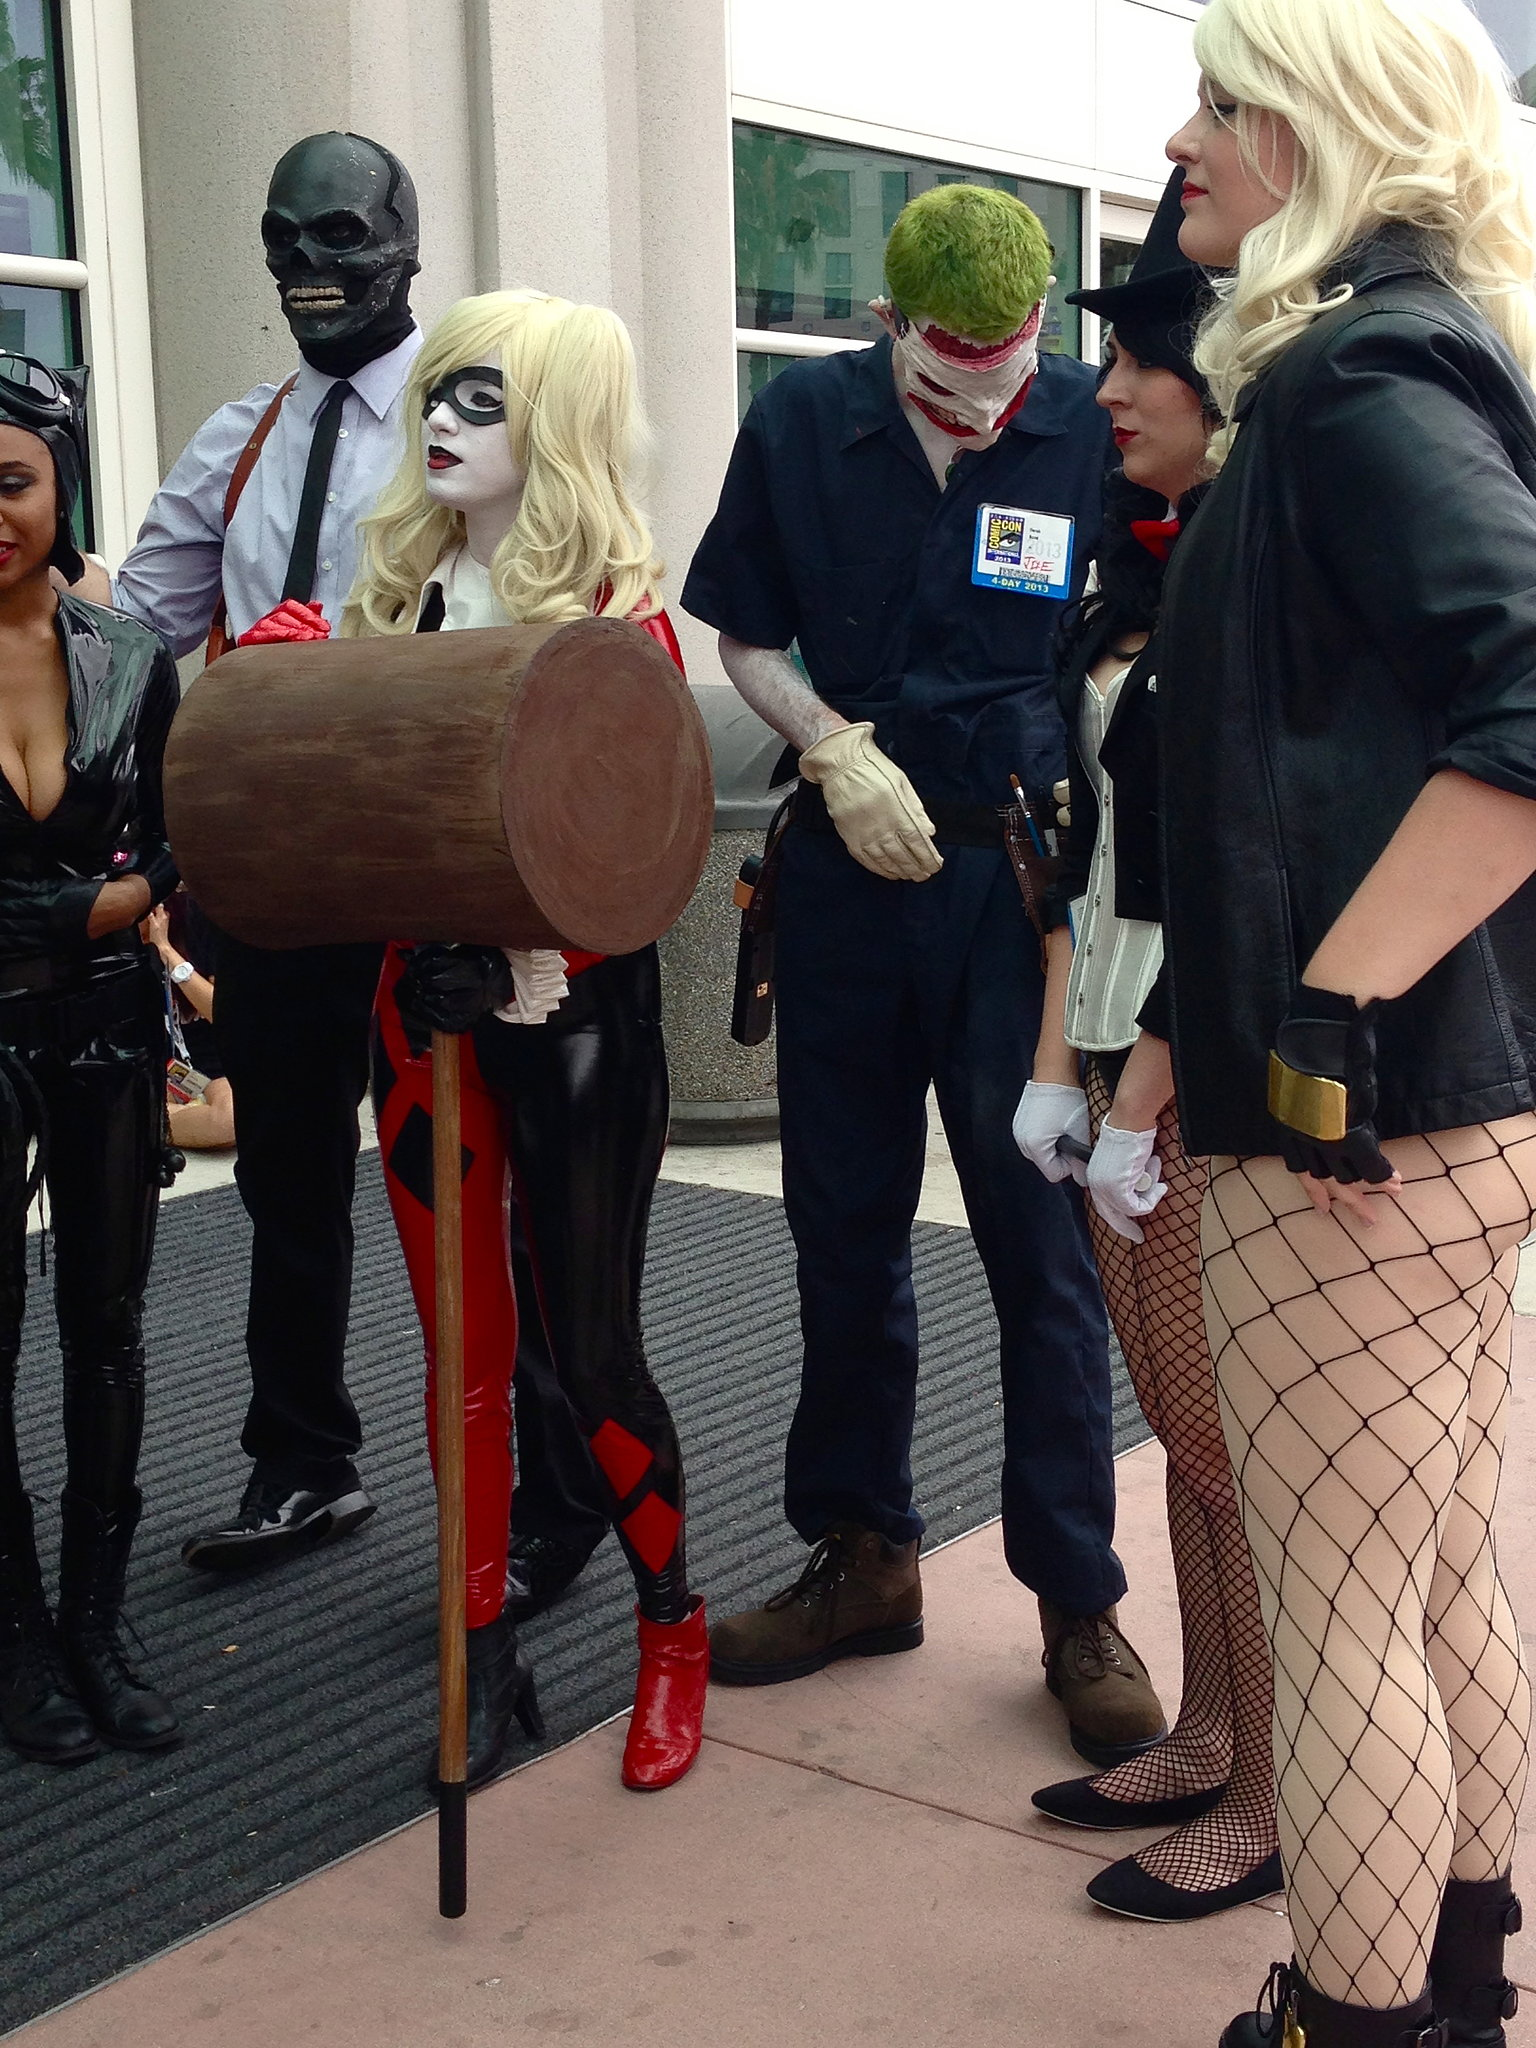 Harley Quinn's giant wooden mallet makes an appearance outside Hall H.